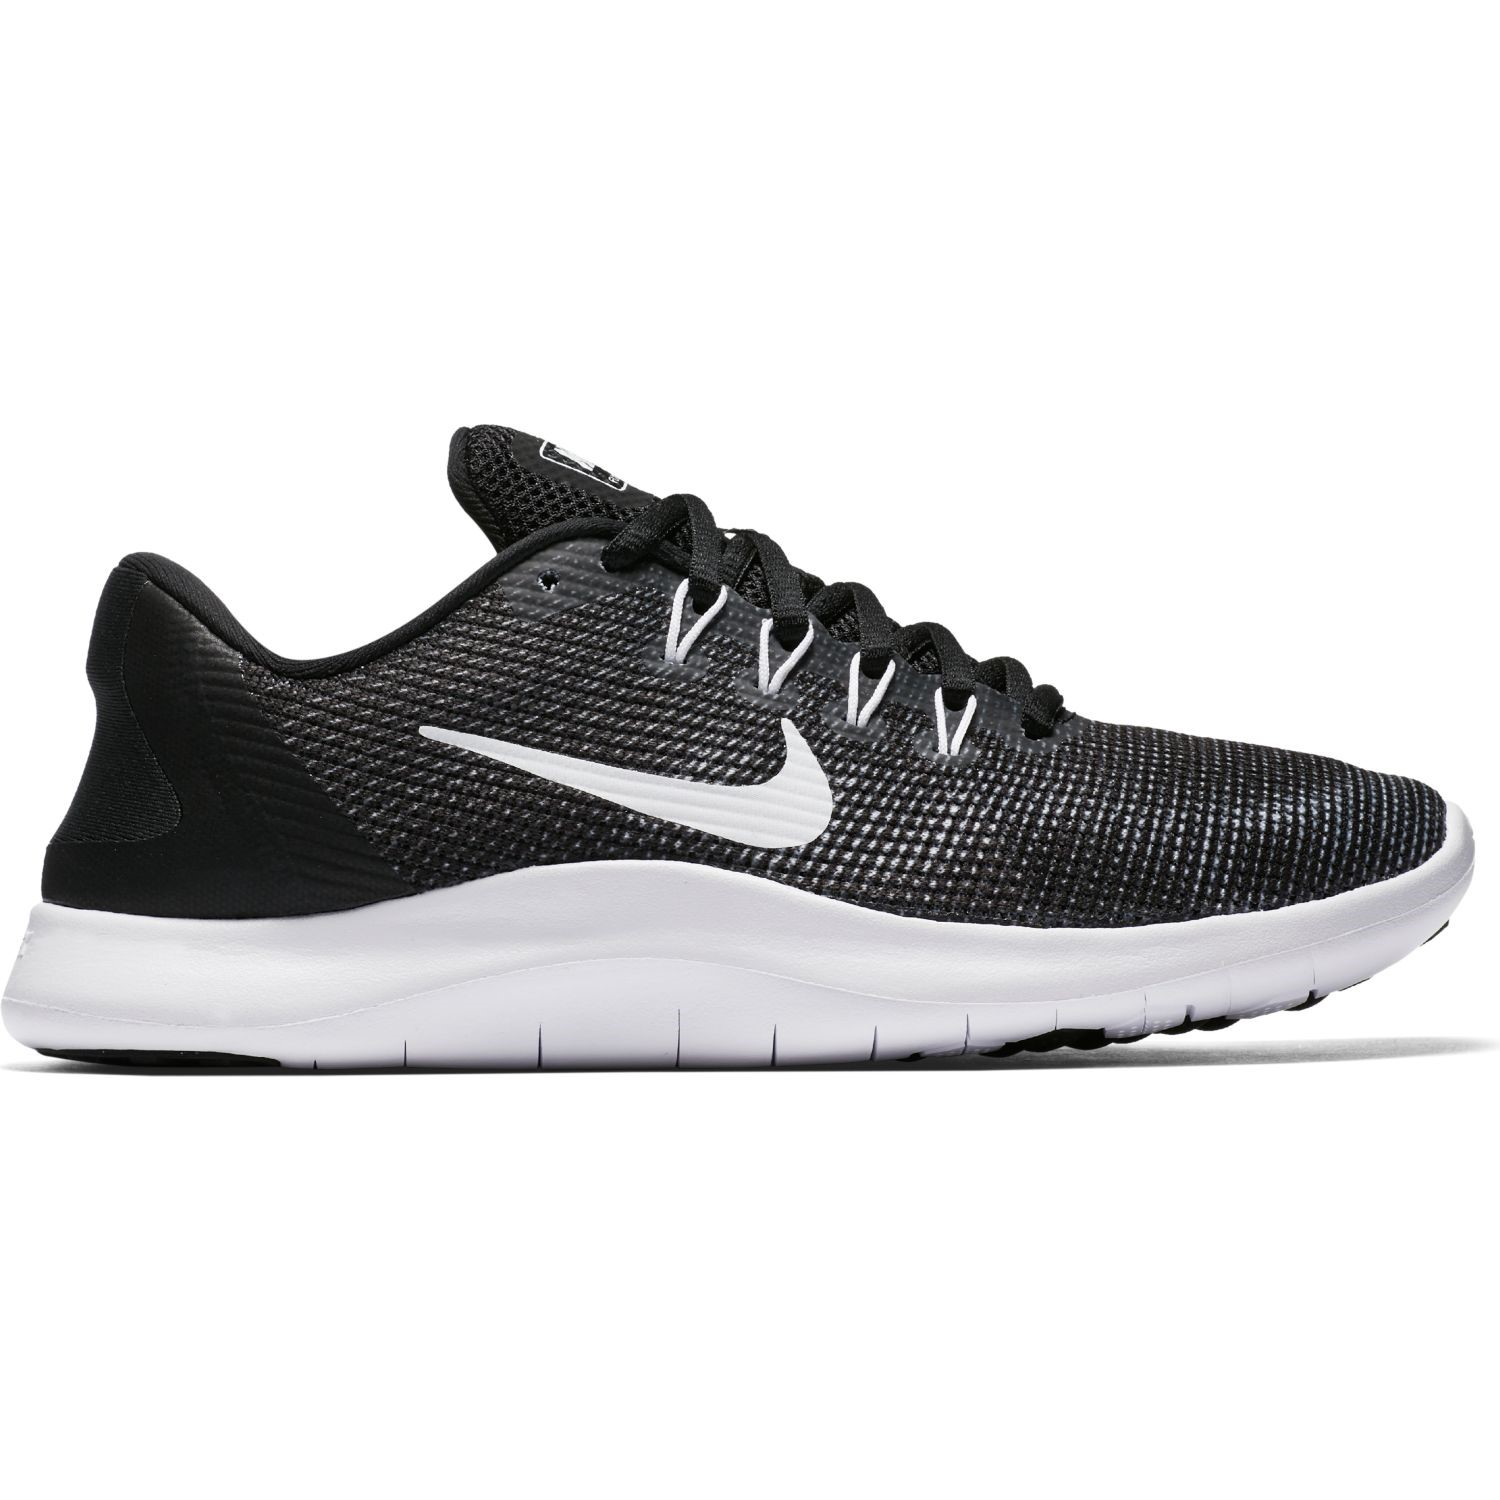 65d0ad4ba275 Nike Flex RN 2018 - Womens Running Shoes - Black White